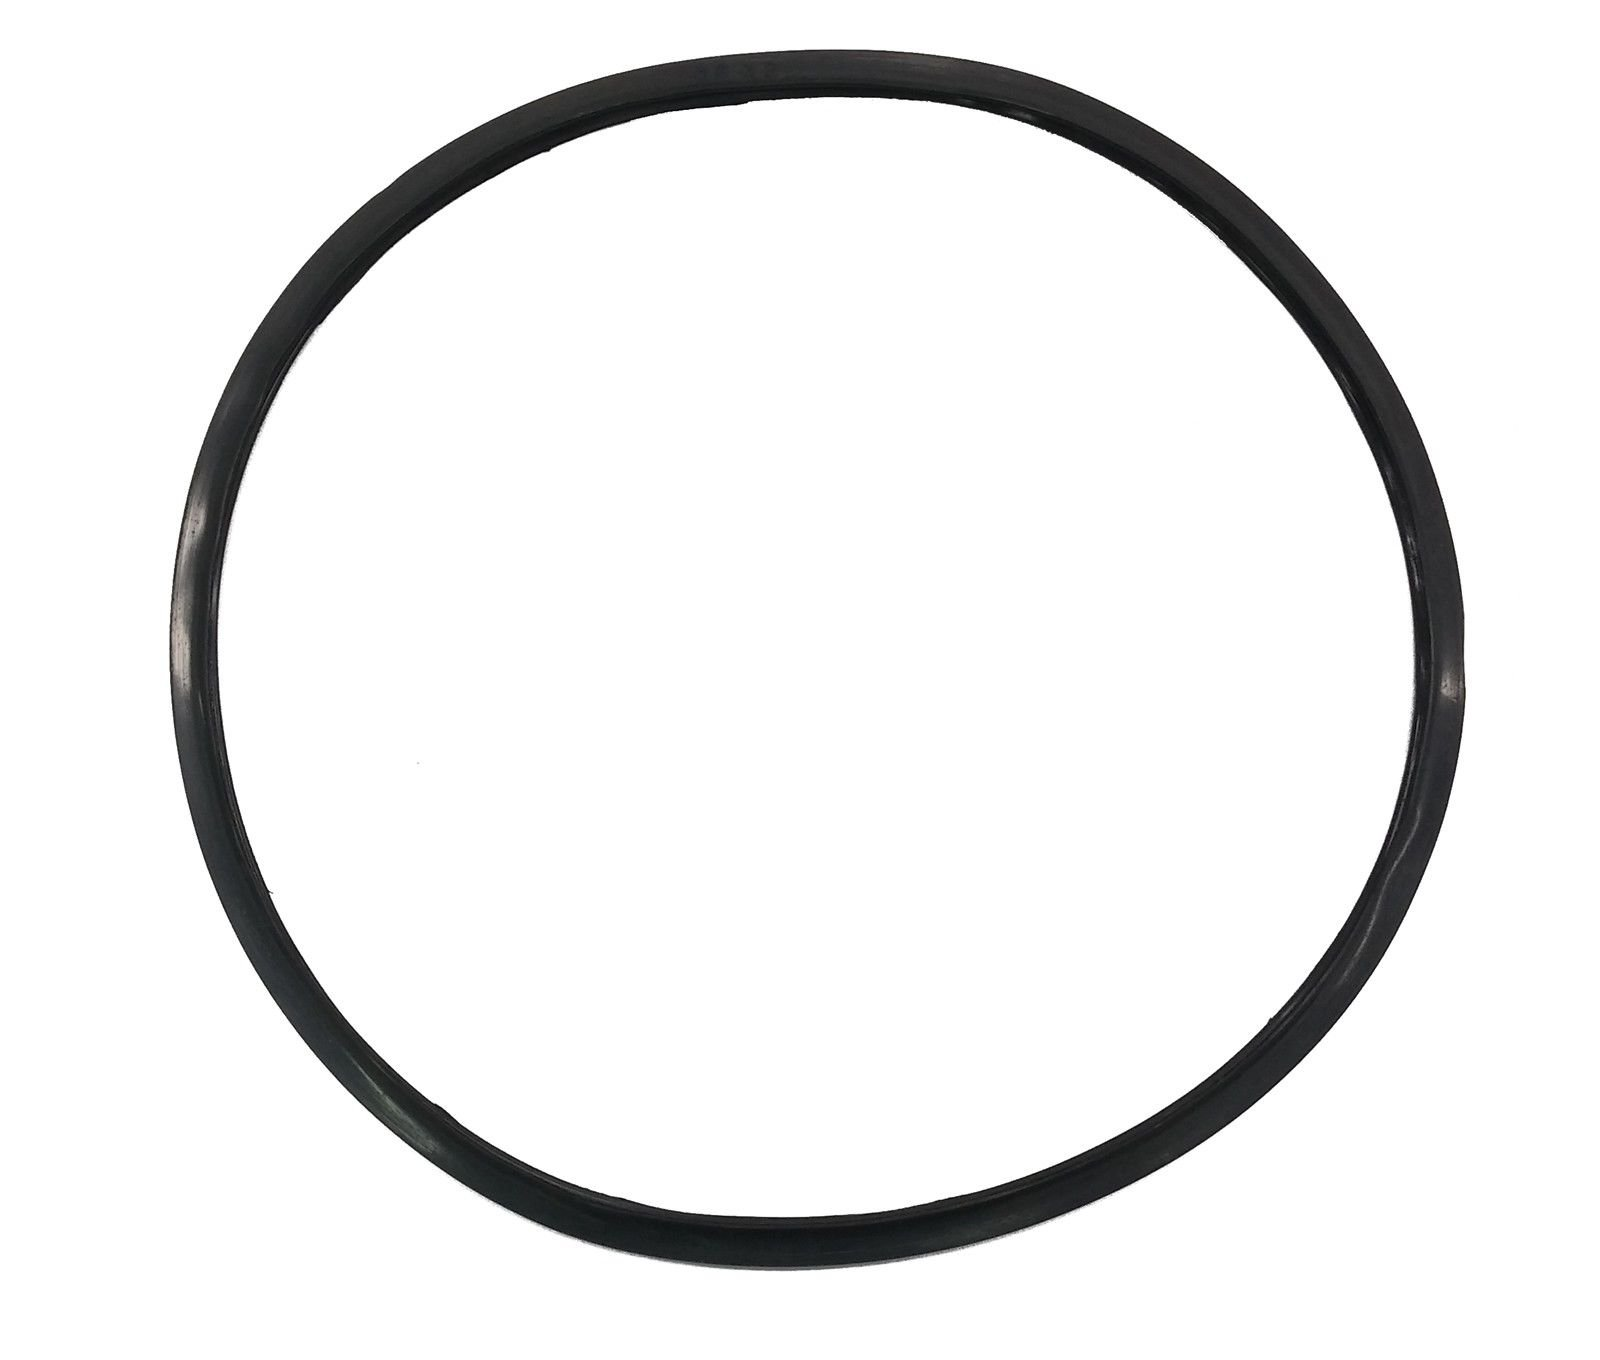 Replacement Pressure Cooker Gasket Mirro S-9892 4, 6 and 8 Quart models